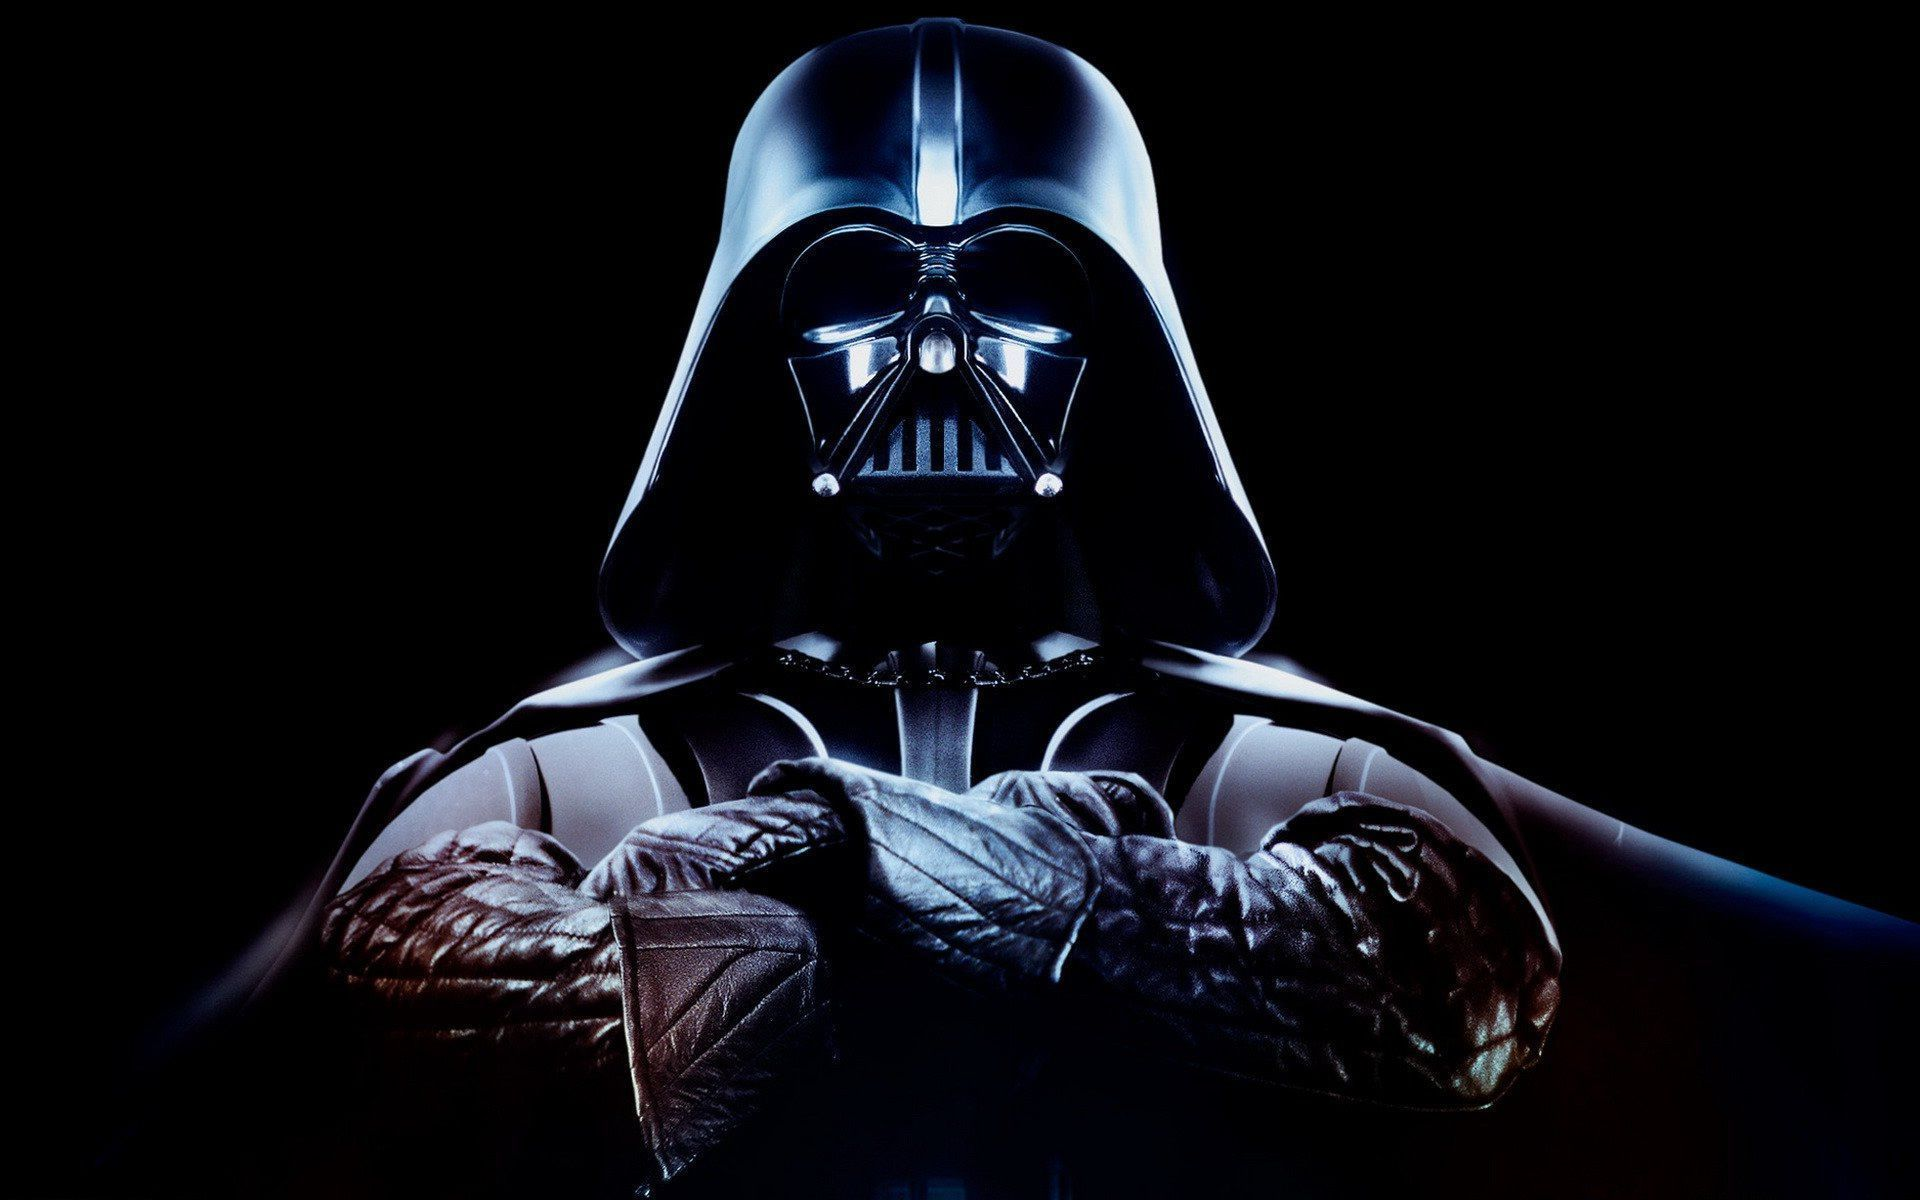 Darth Vader Wallpaper Kolpaper Awesome Free Hd Wallpapers